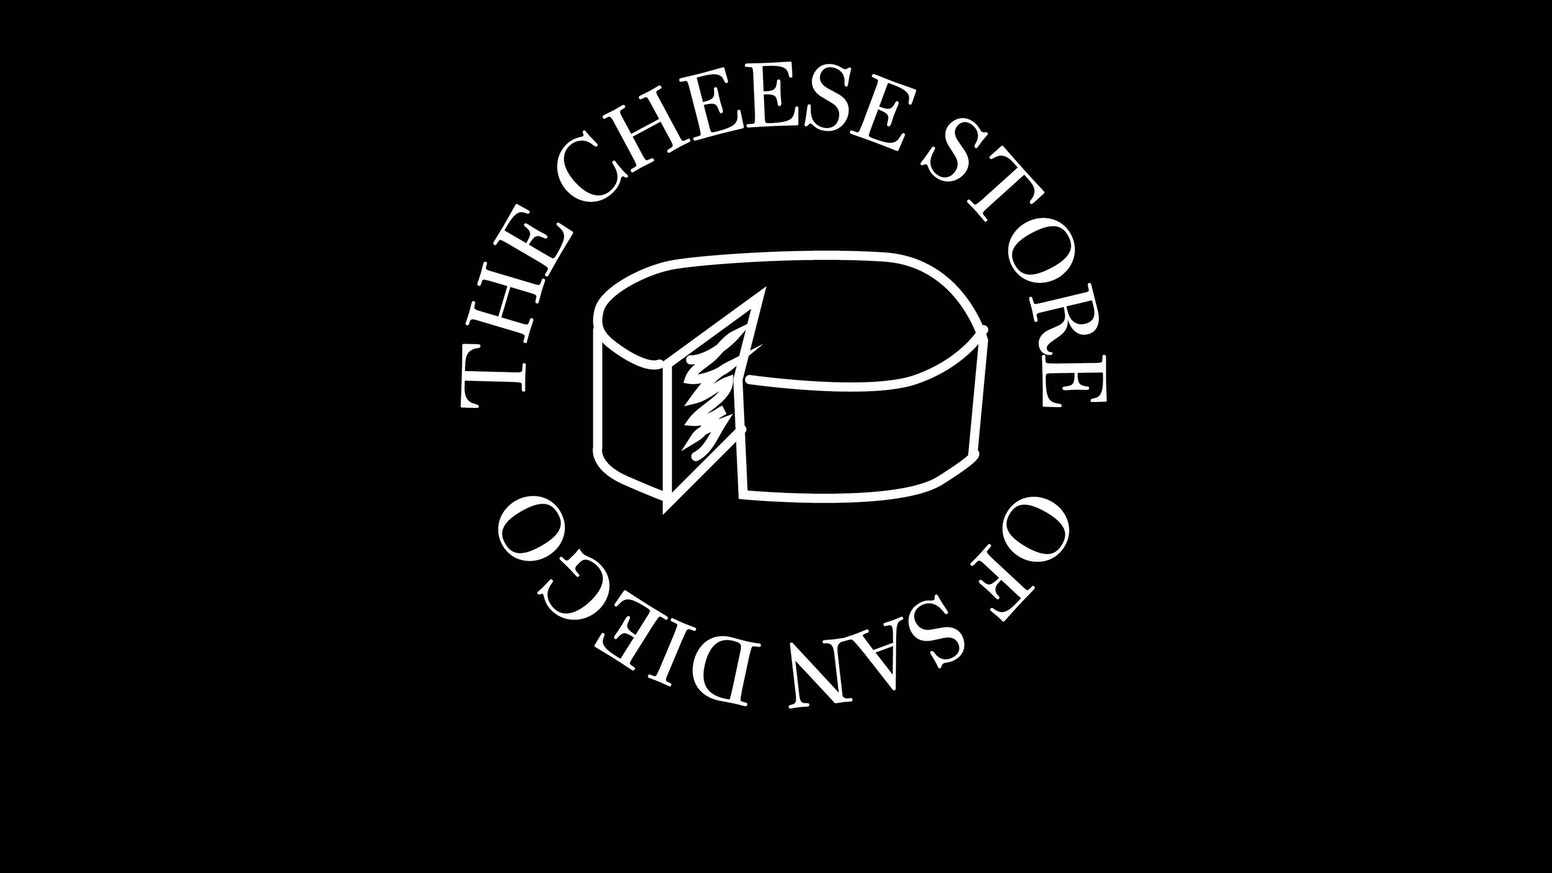 The Cheese Store of San Diego \